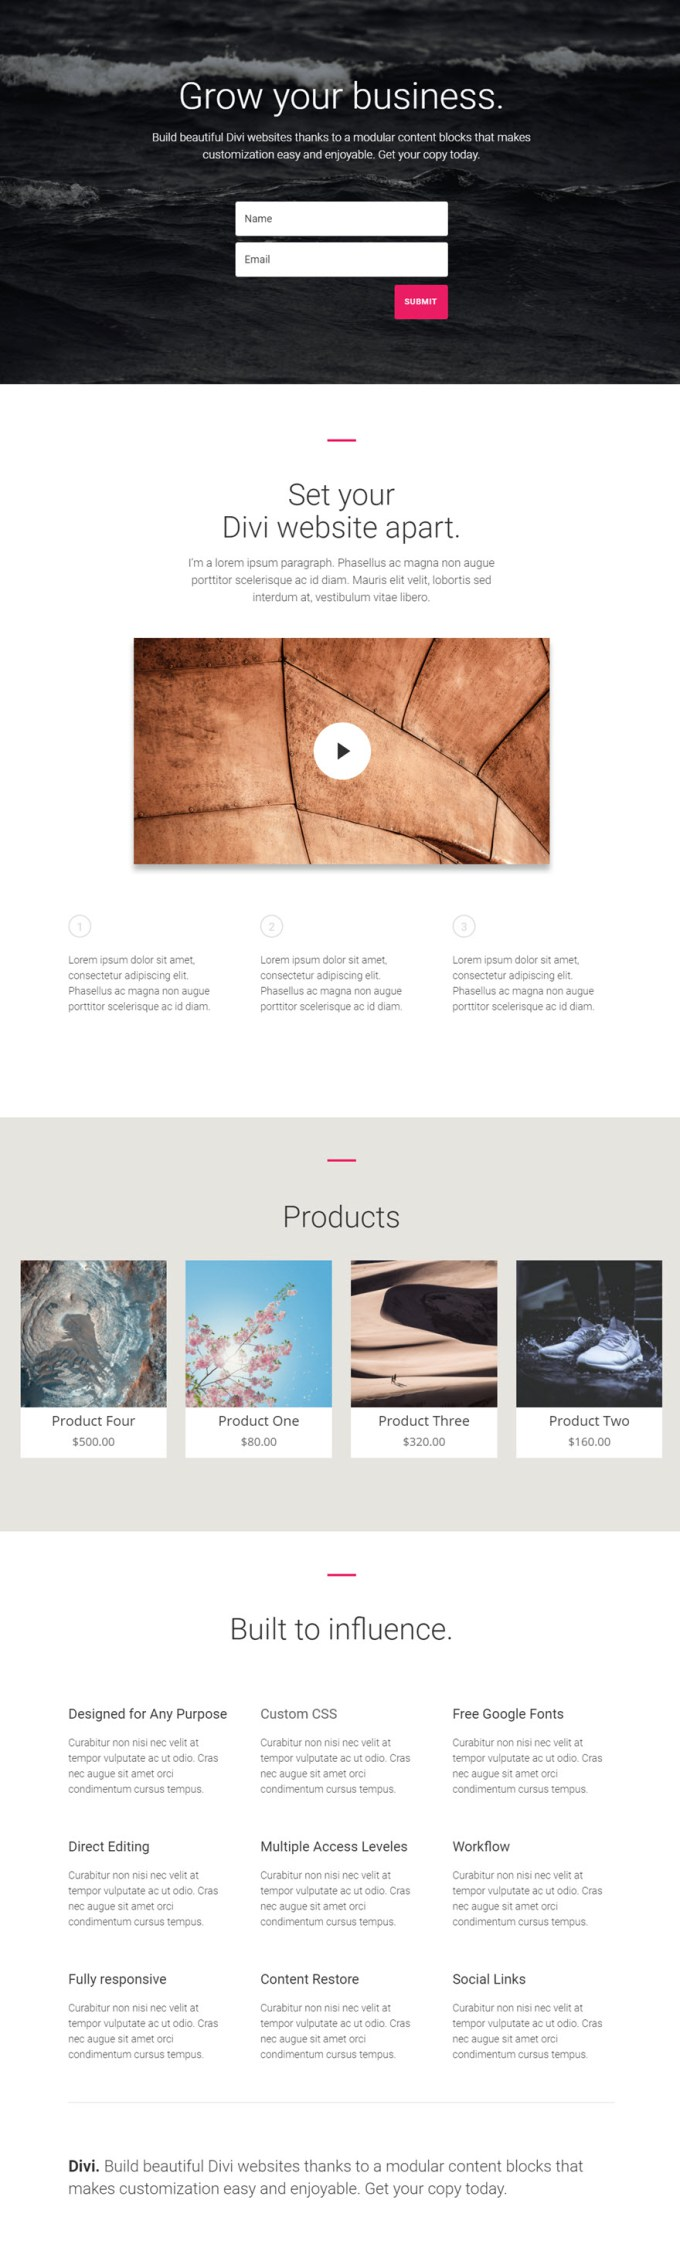 display products on an accel page divi.jpg